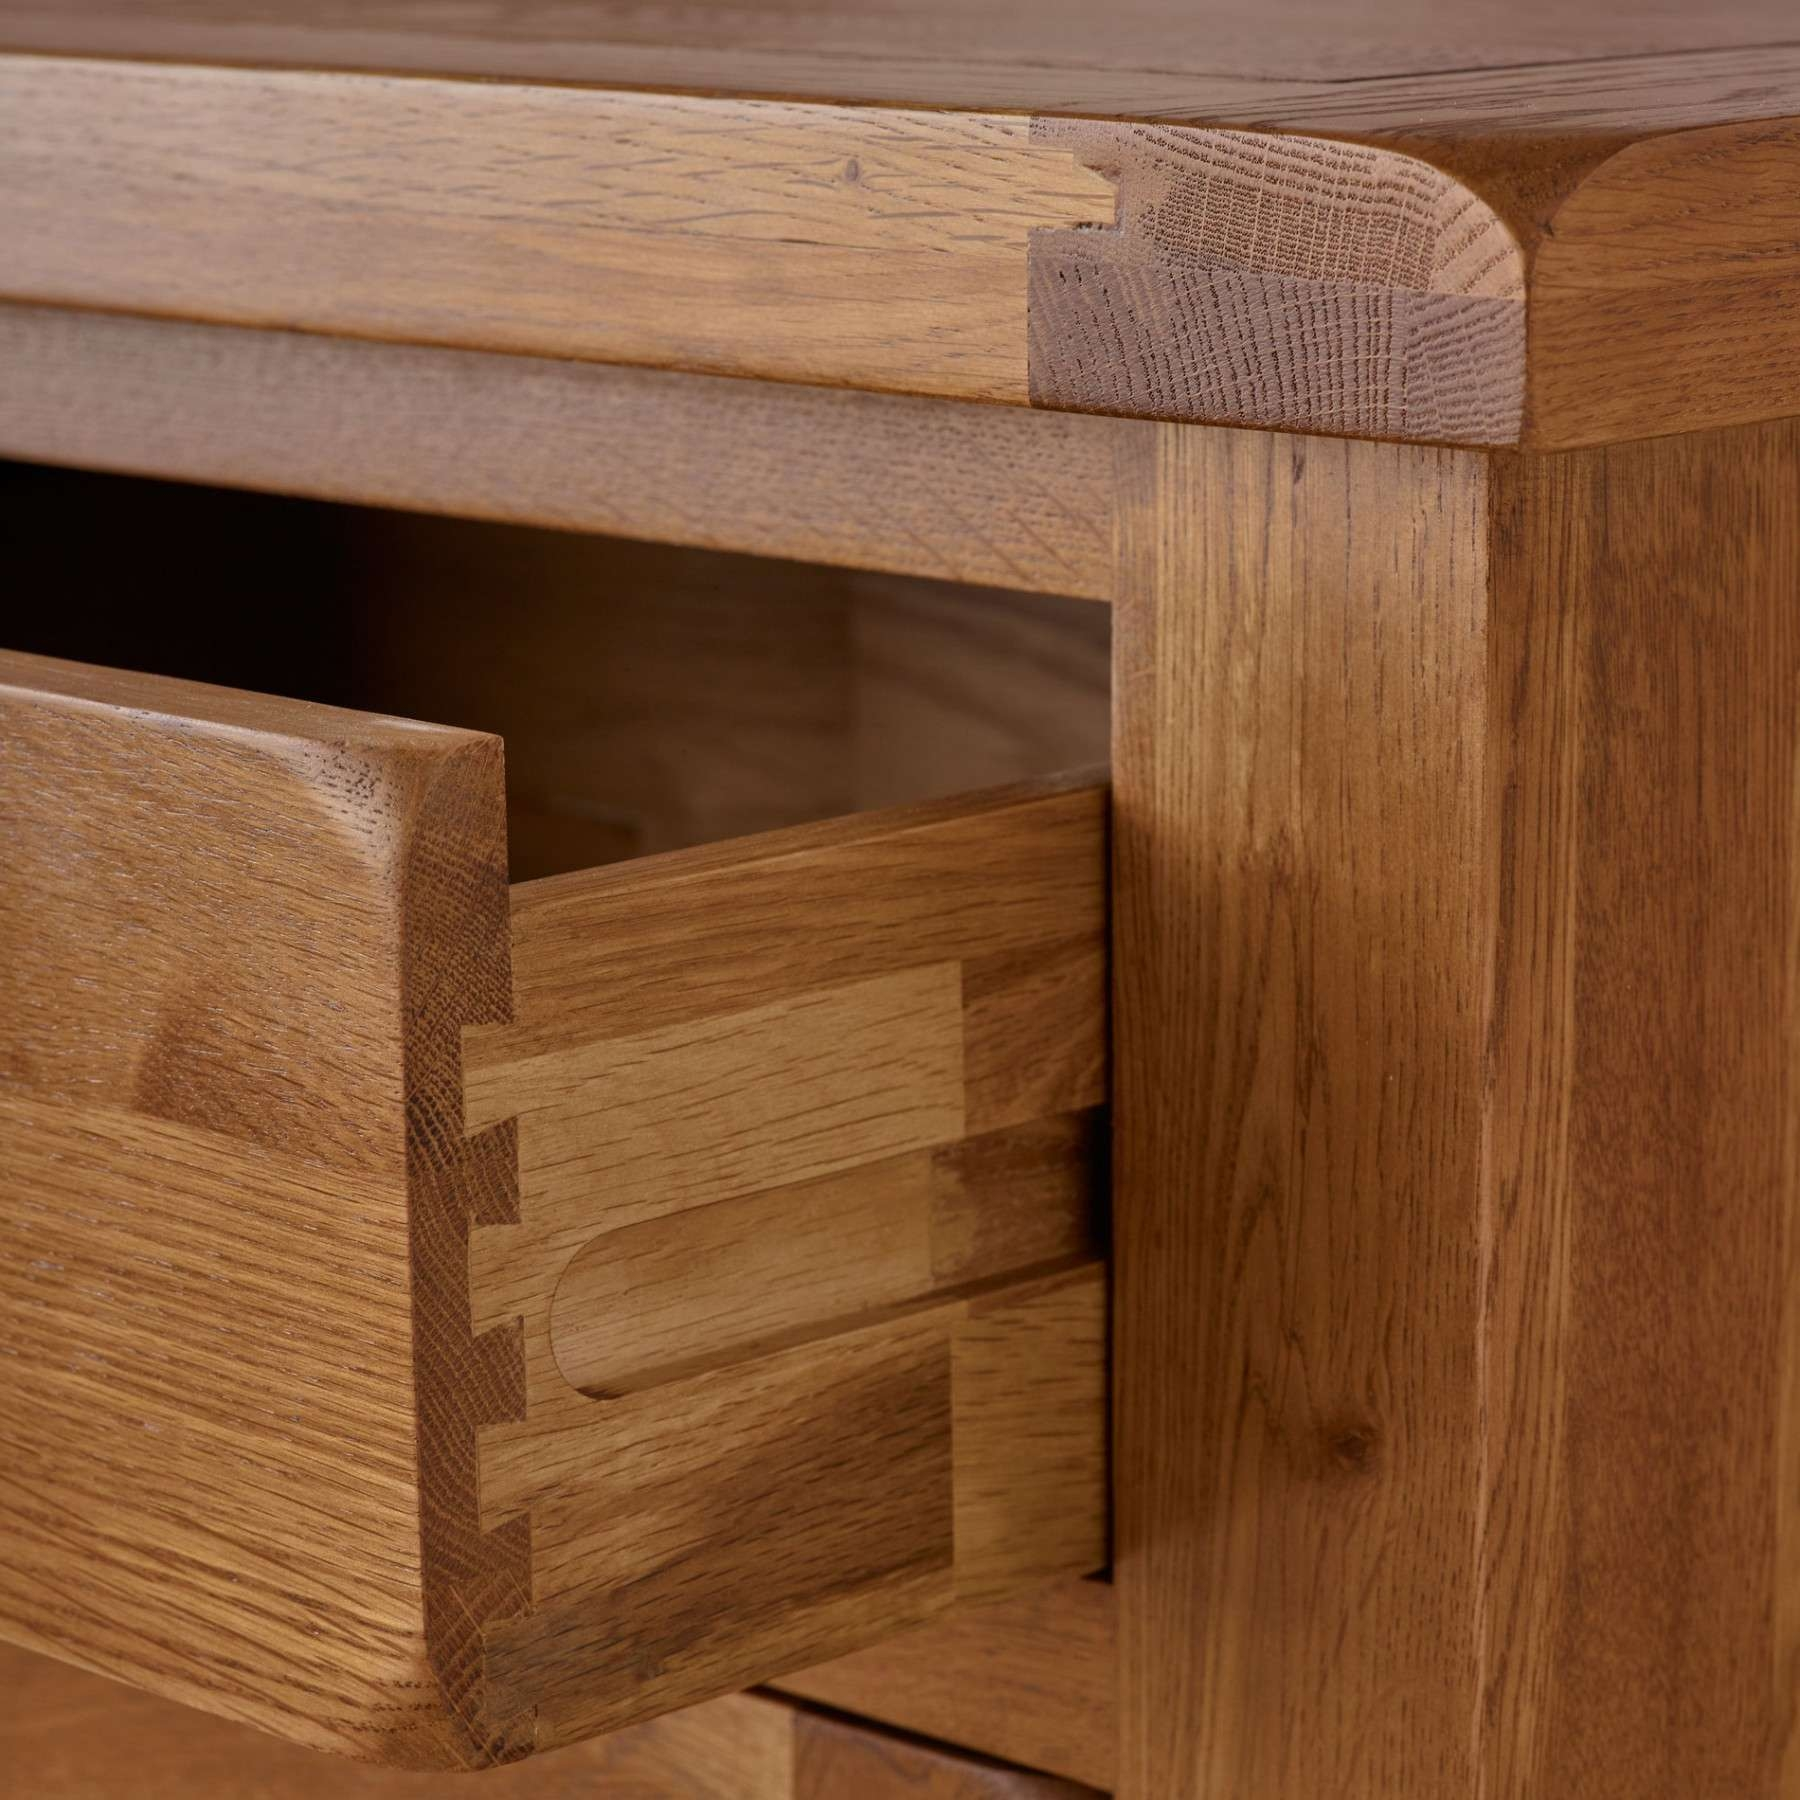 Original Rustic Solid Oak Large Sideboard | Sideboards | Dining Regarding Rustic Oak Large Sideboards (View 19 of 20)